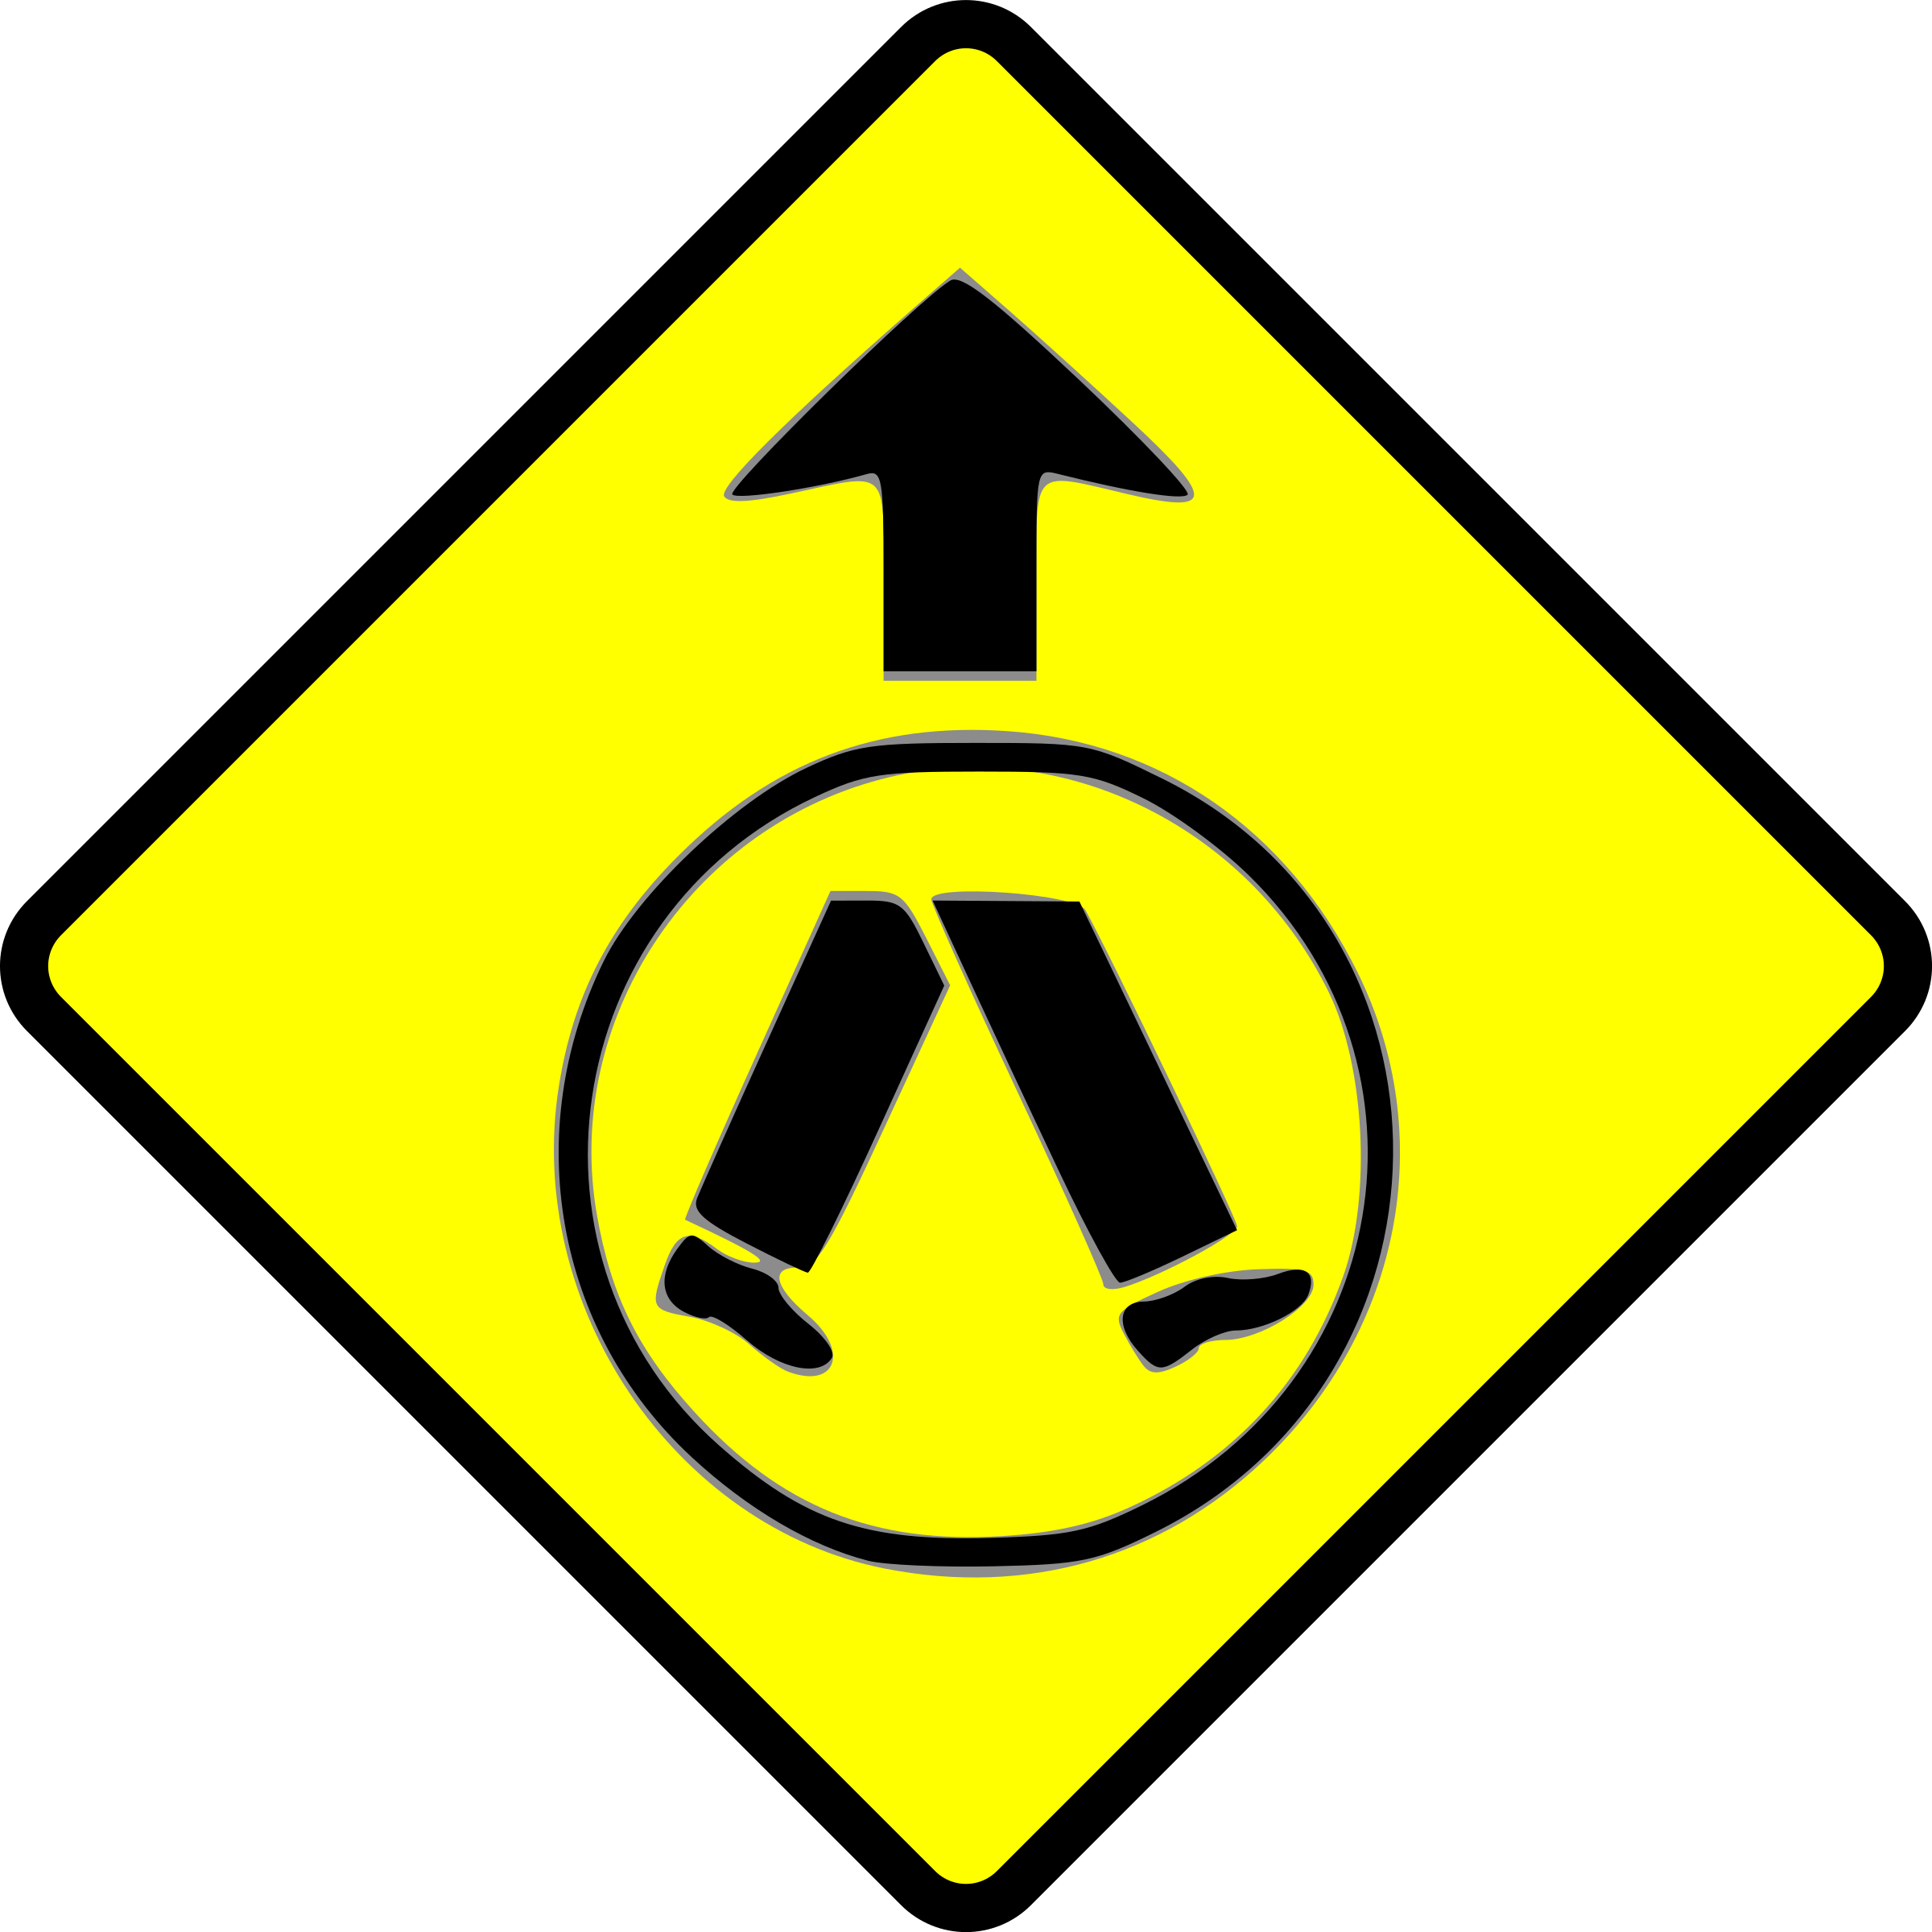 Caution pedestrian crossing big. Electrical clipart warning